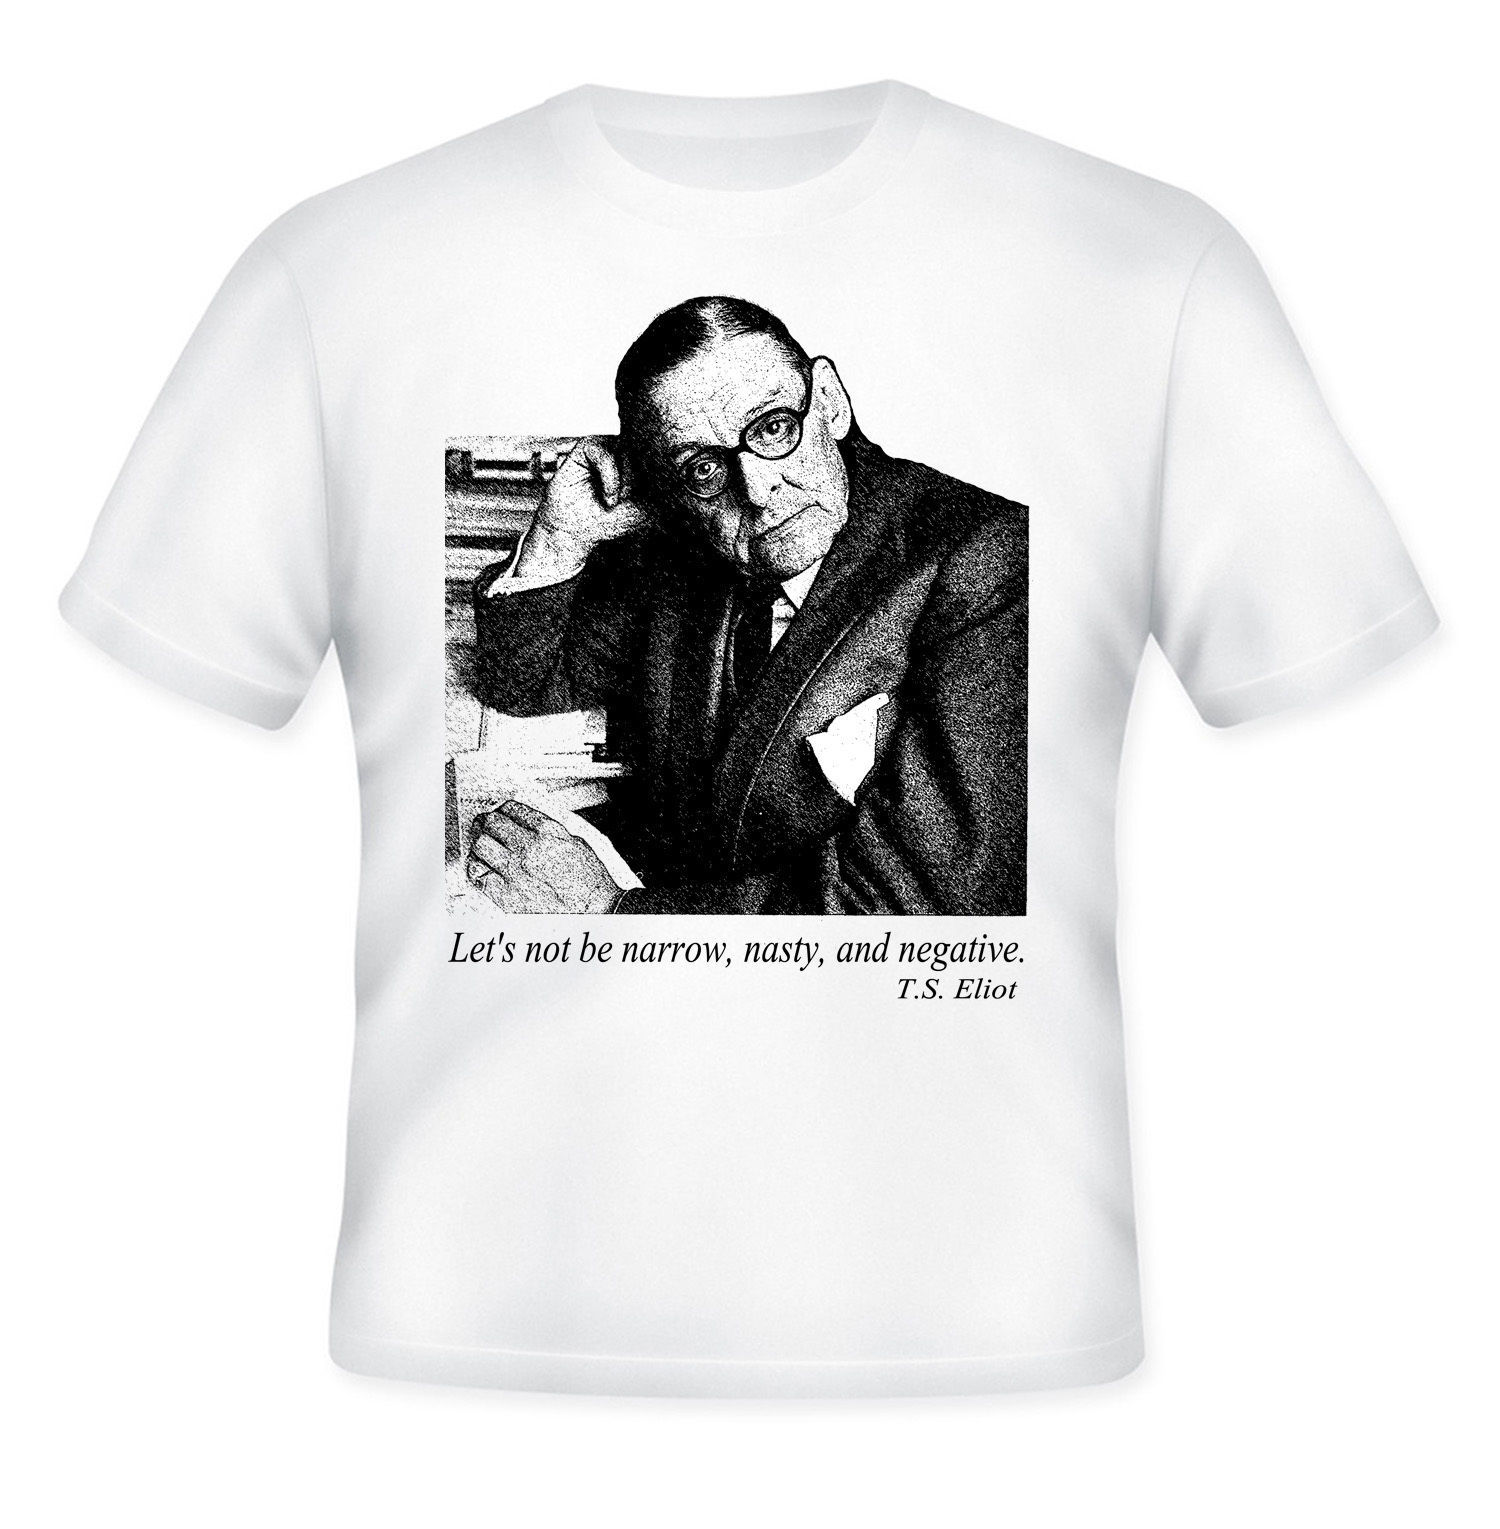 Primary image for T.S. ELIOT - NEW AMAZING GRAPHIC QUOTE T-SHIRT - S-M-L-XL-XXL